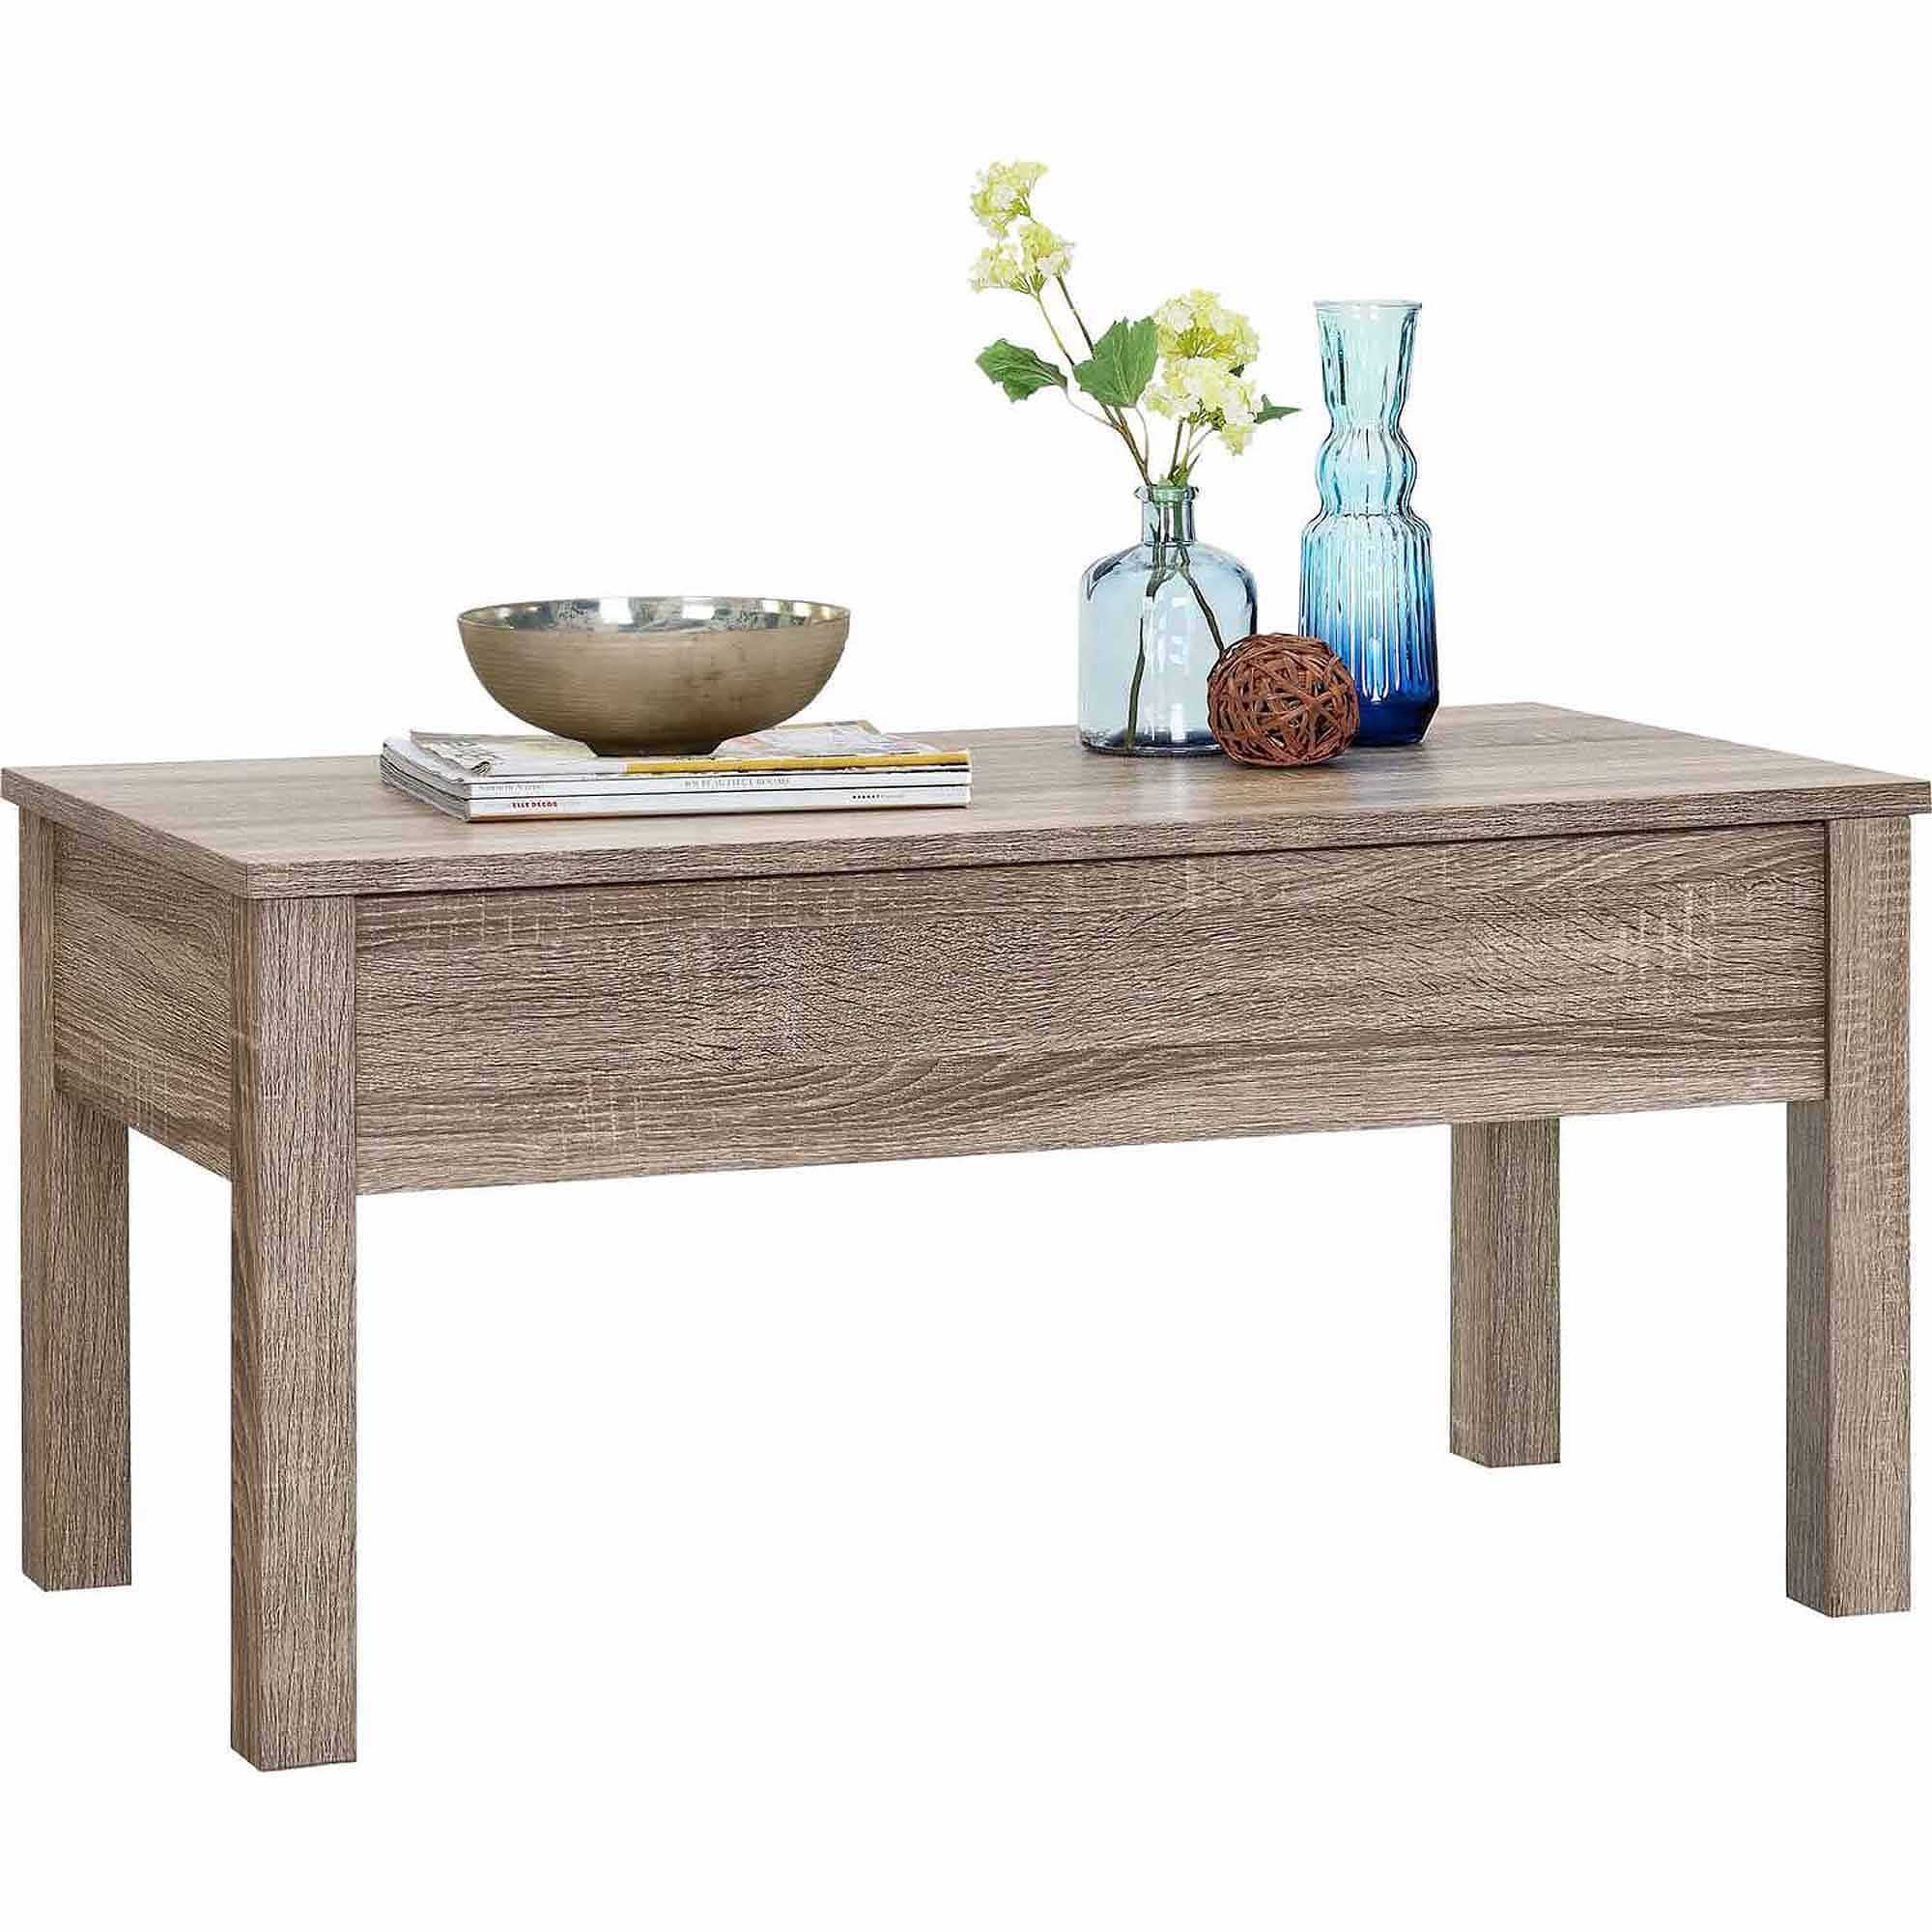 furniture beautiful collection coffee table better homes and gardens target mirrored accent white end tables lift top with storage threshold teal round wicker drum oriental lamps